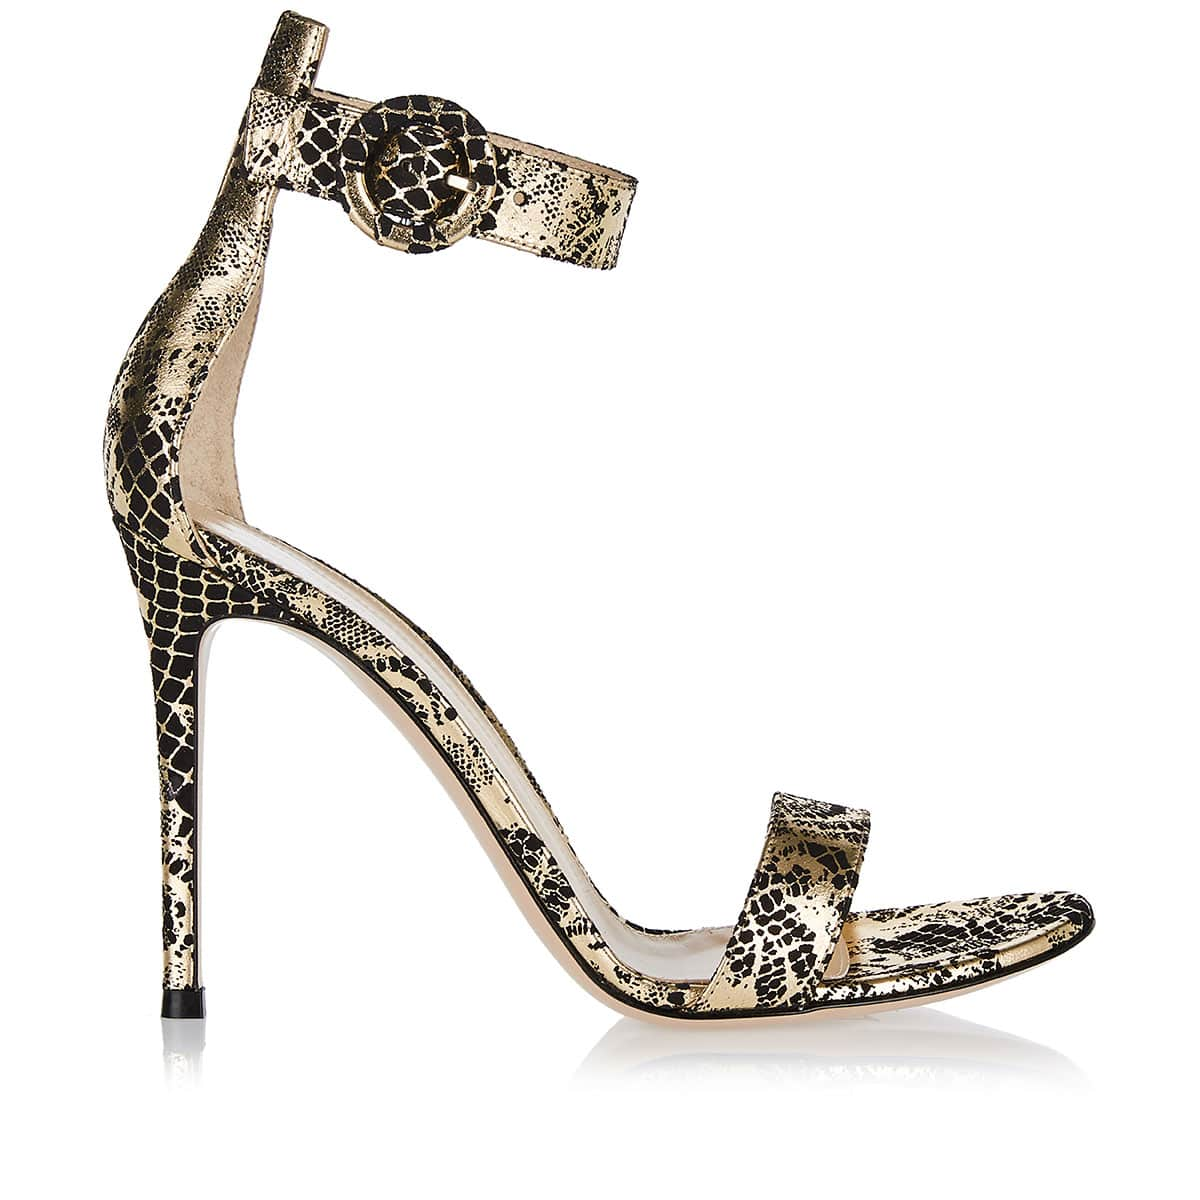 Portofino 105 python leather sandals